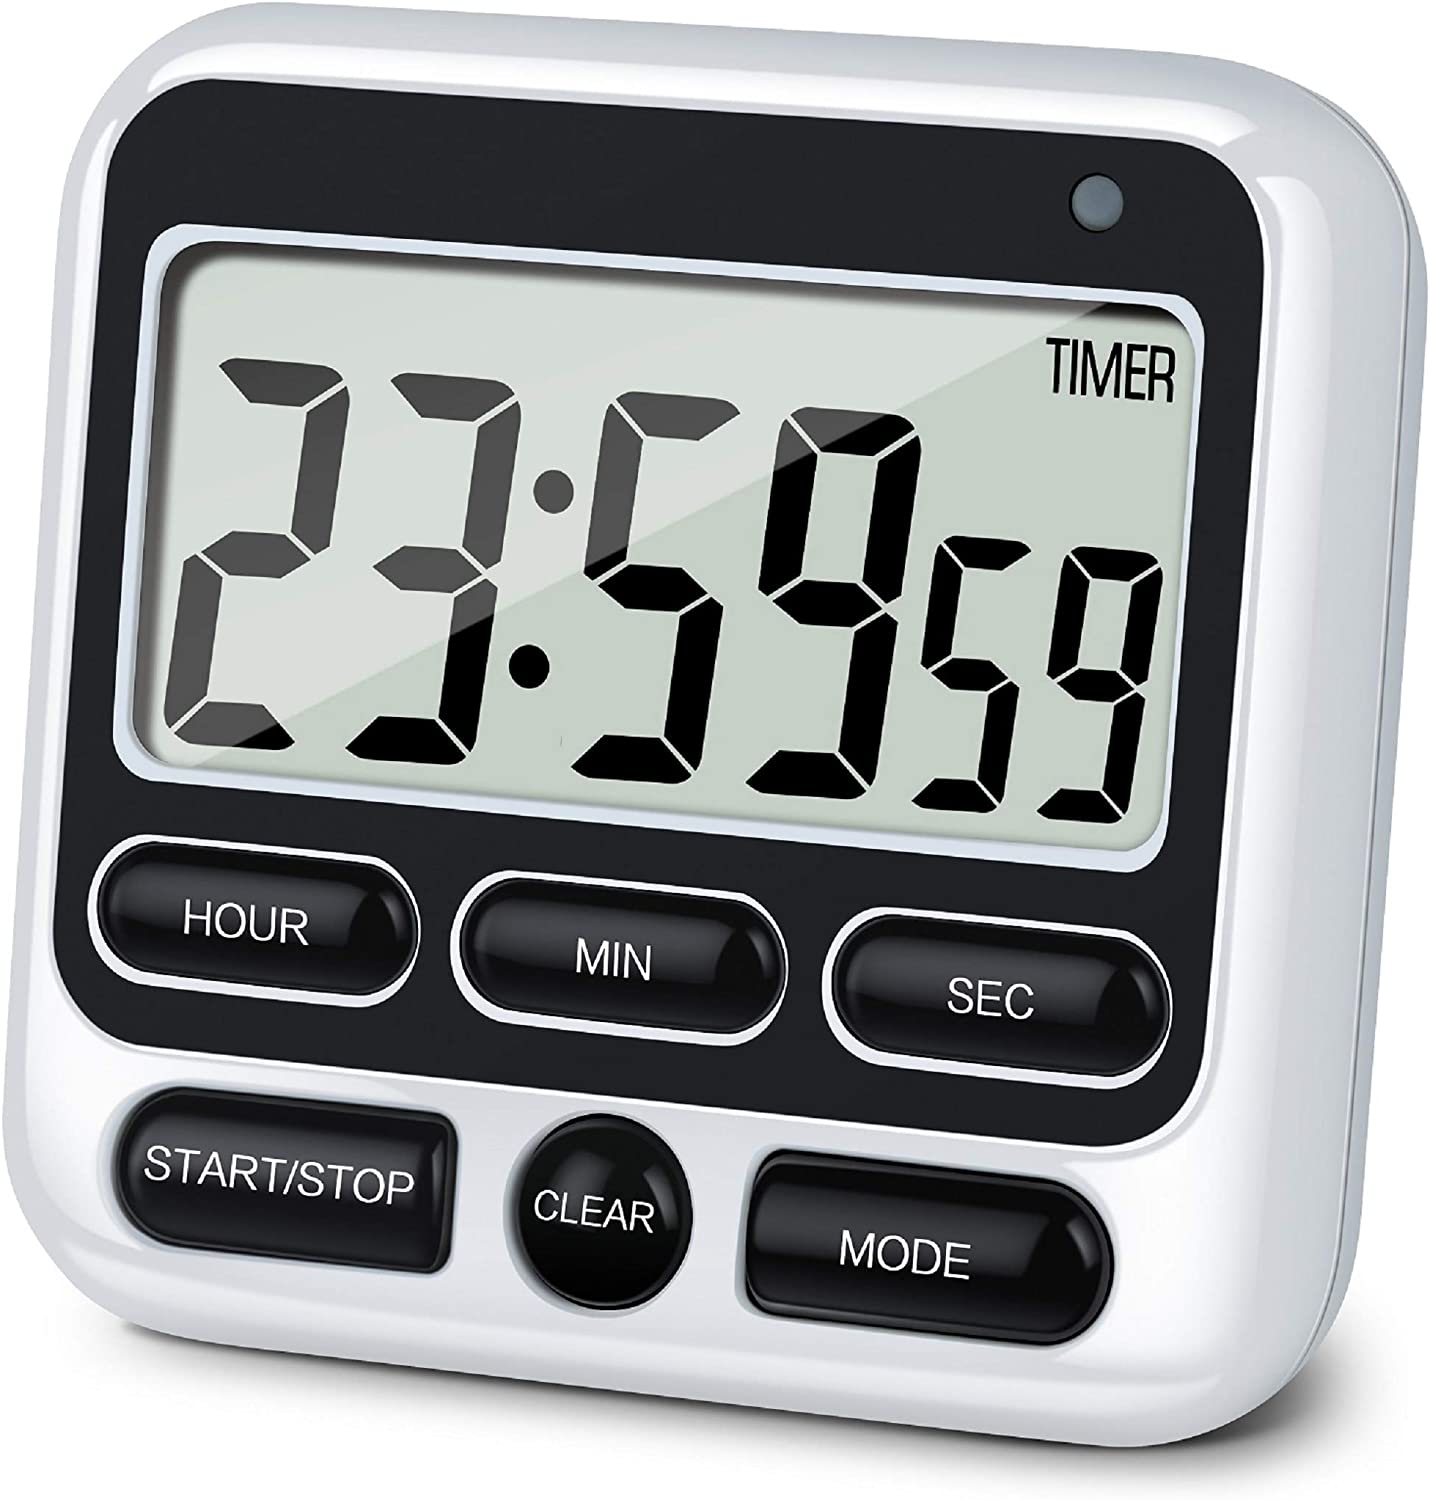 Magnetic LCD Digital Kitchen Timer Count Down Egg Cooking Clear Loud Alarm